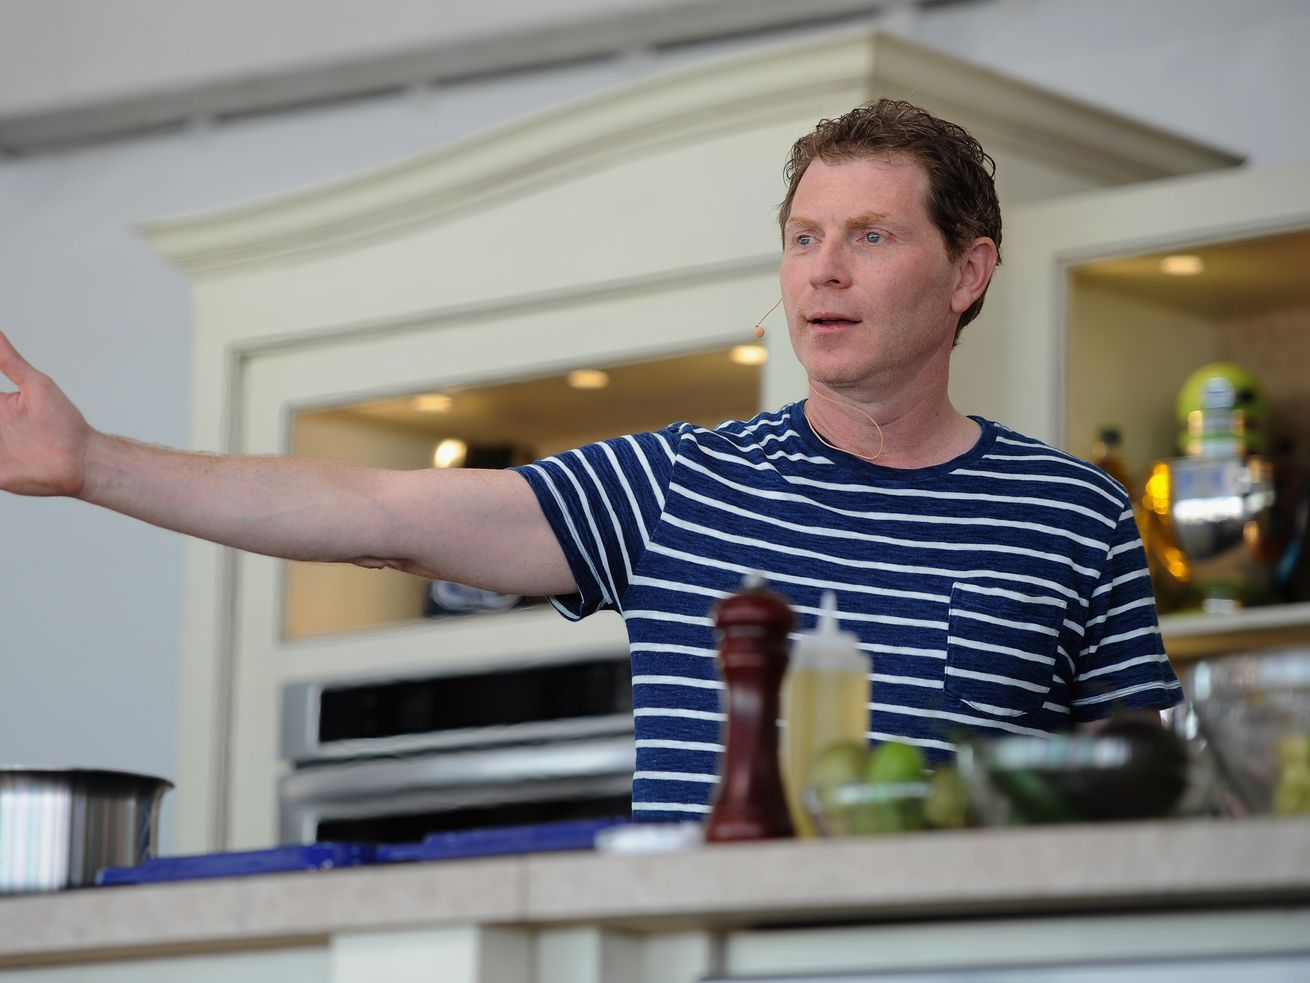 15 Headlines for Future Reviews of Bobby Flay